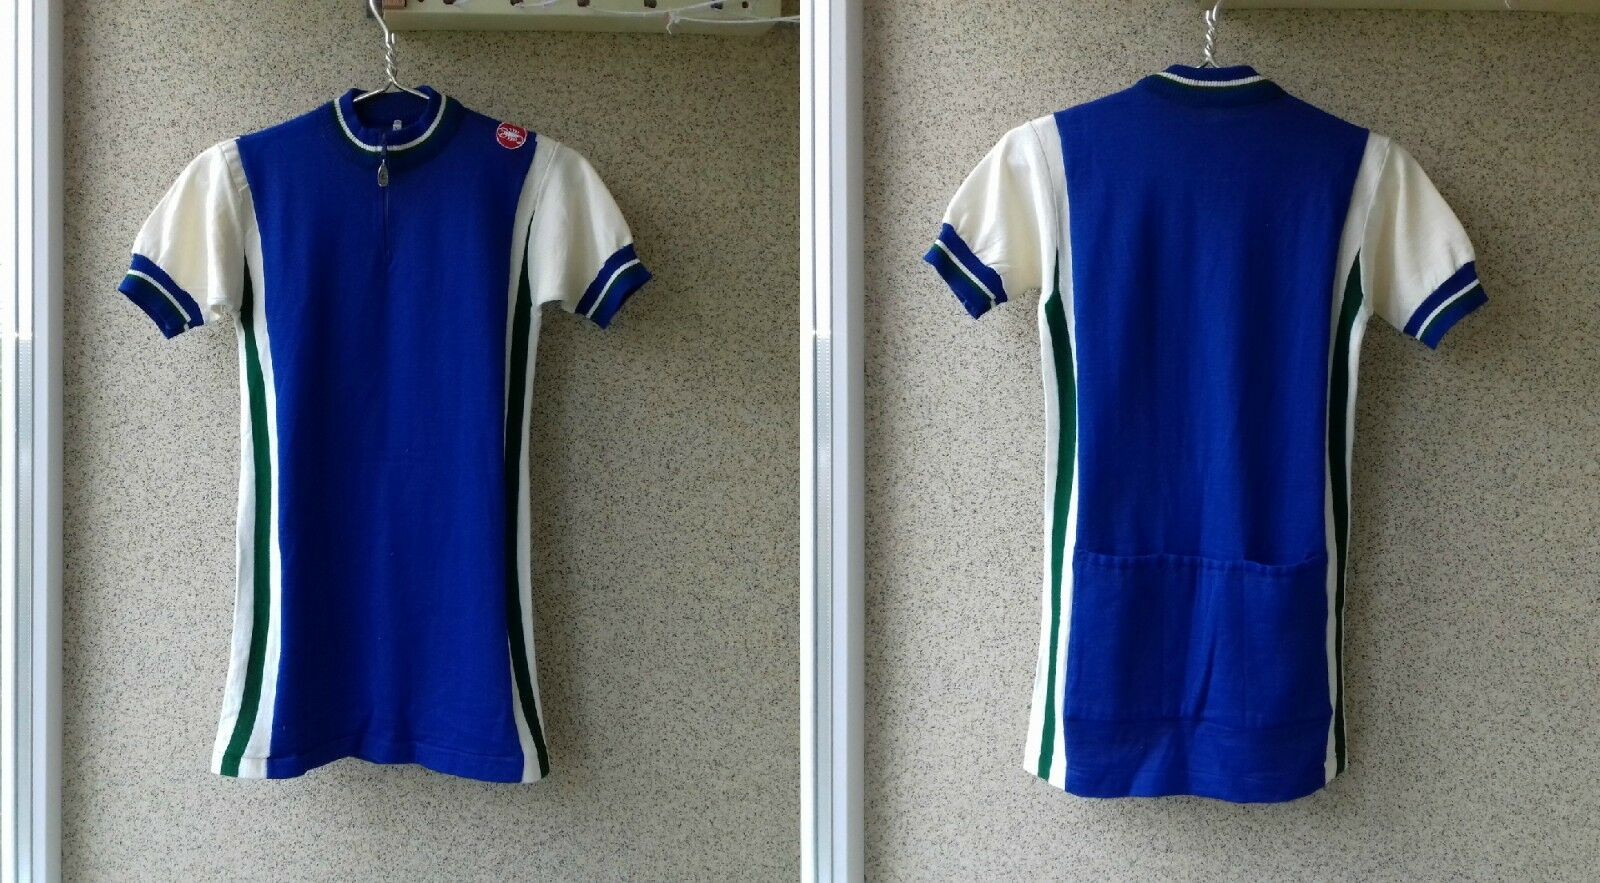 Castelli Cycling 1975 1980 Vintage shirt 5 Jersey OLD ITALY Rare Very Camiseta